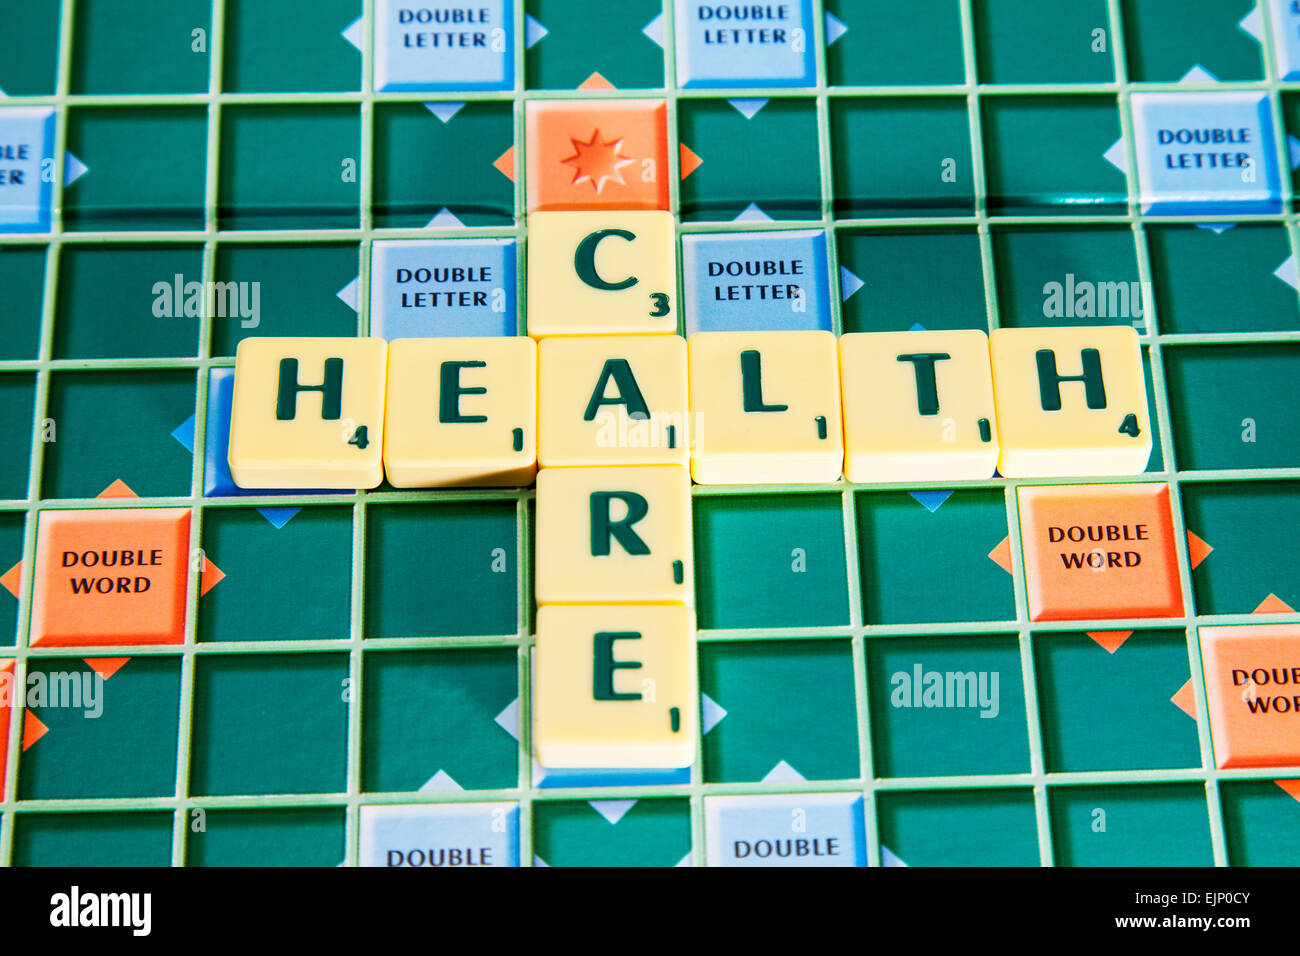 health care nhs hospital hospitals doctors words using scrabble tiles to illustrate spelling spell out - Stock Image